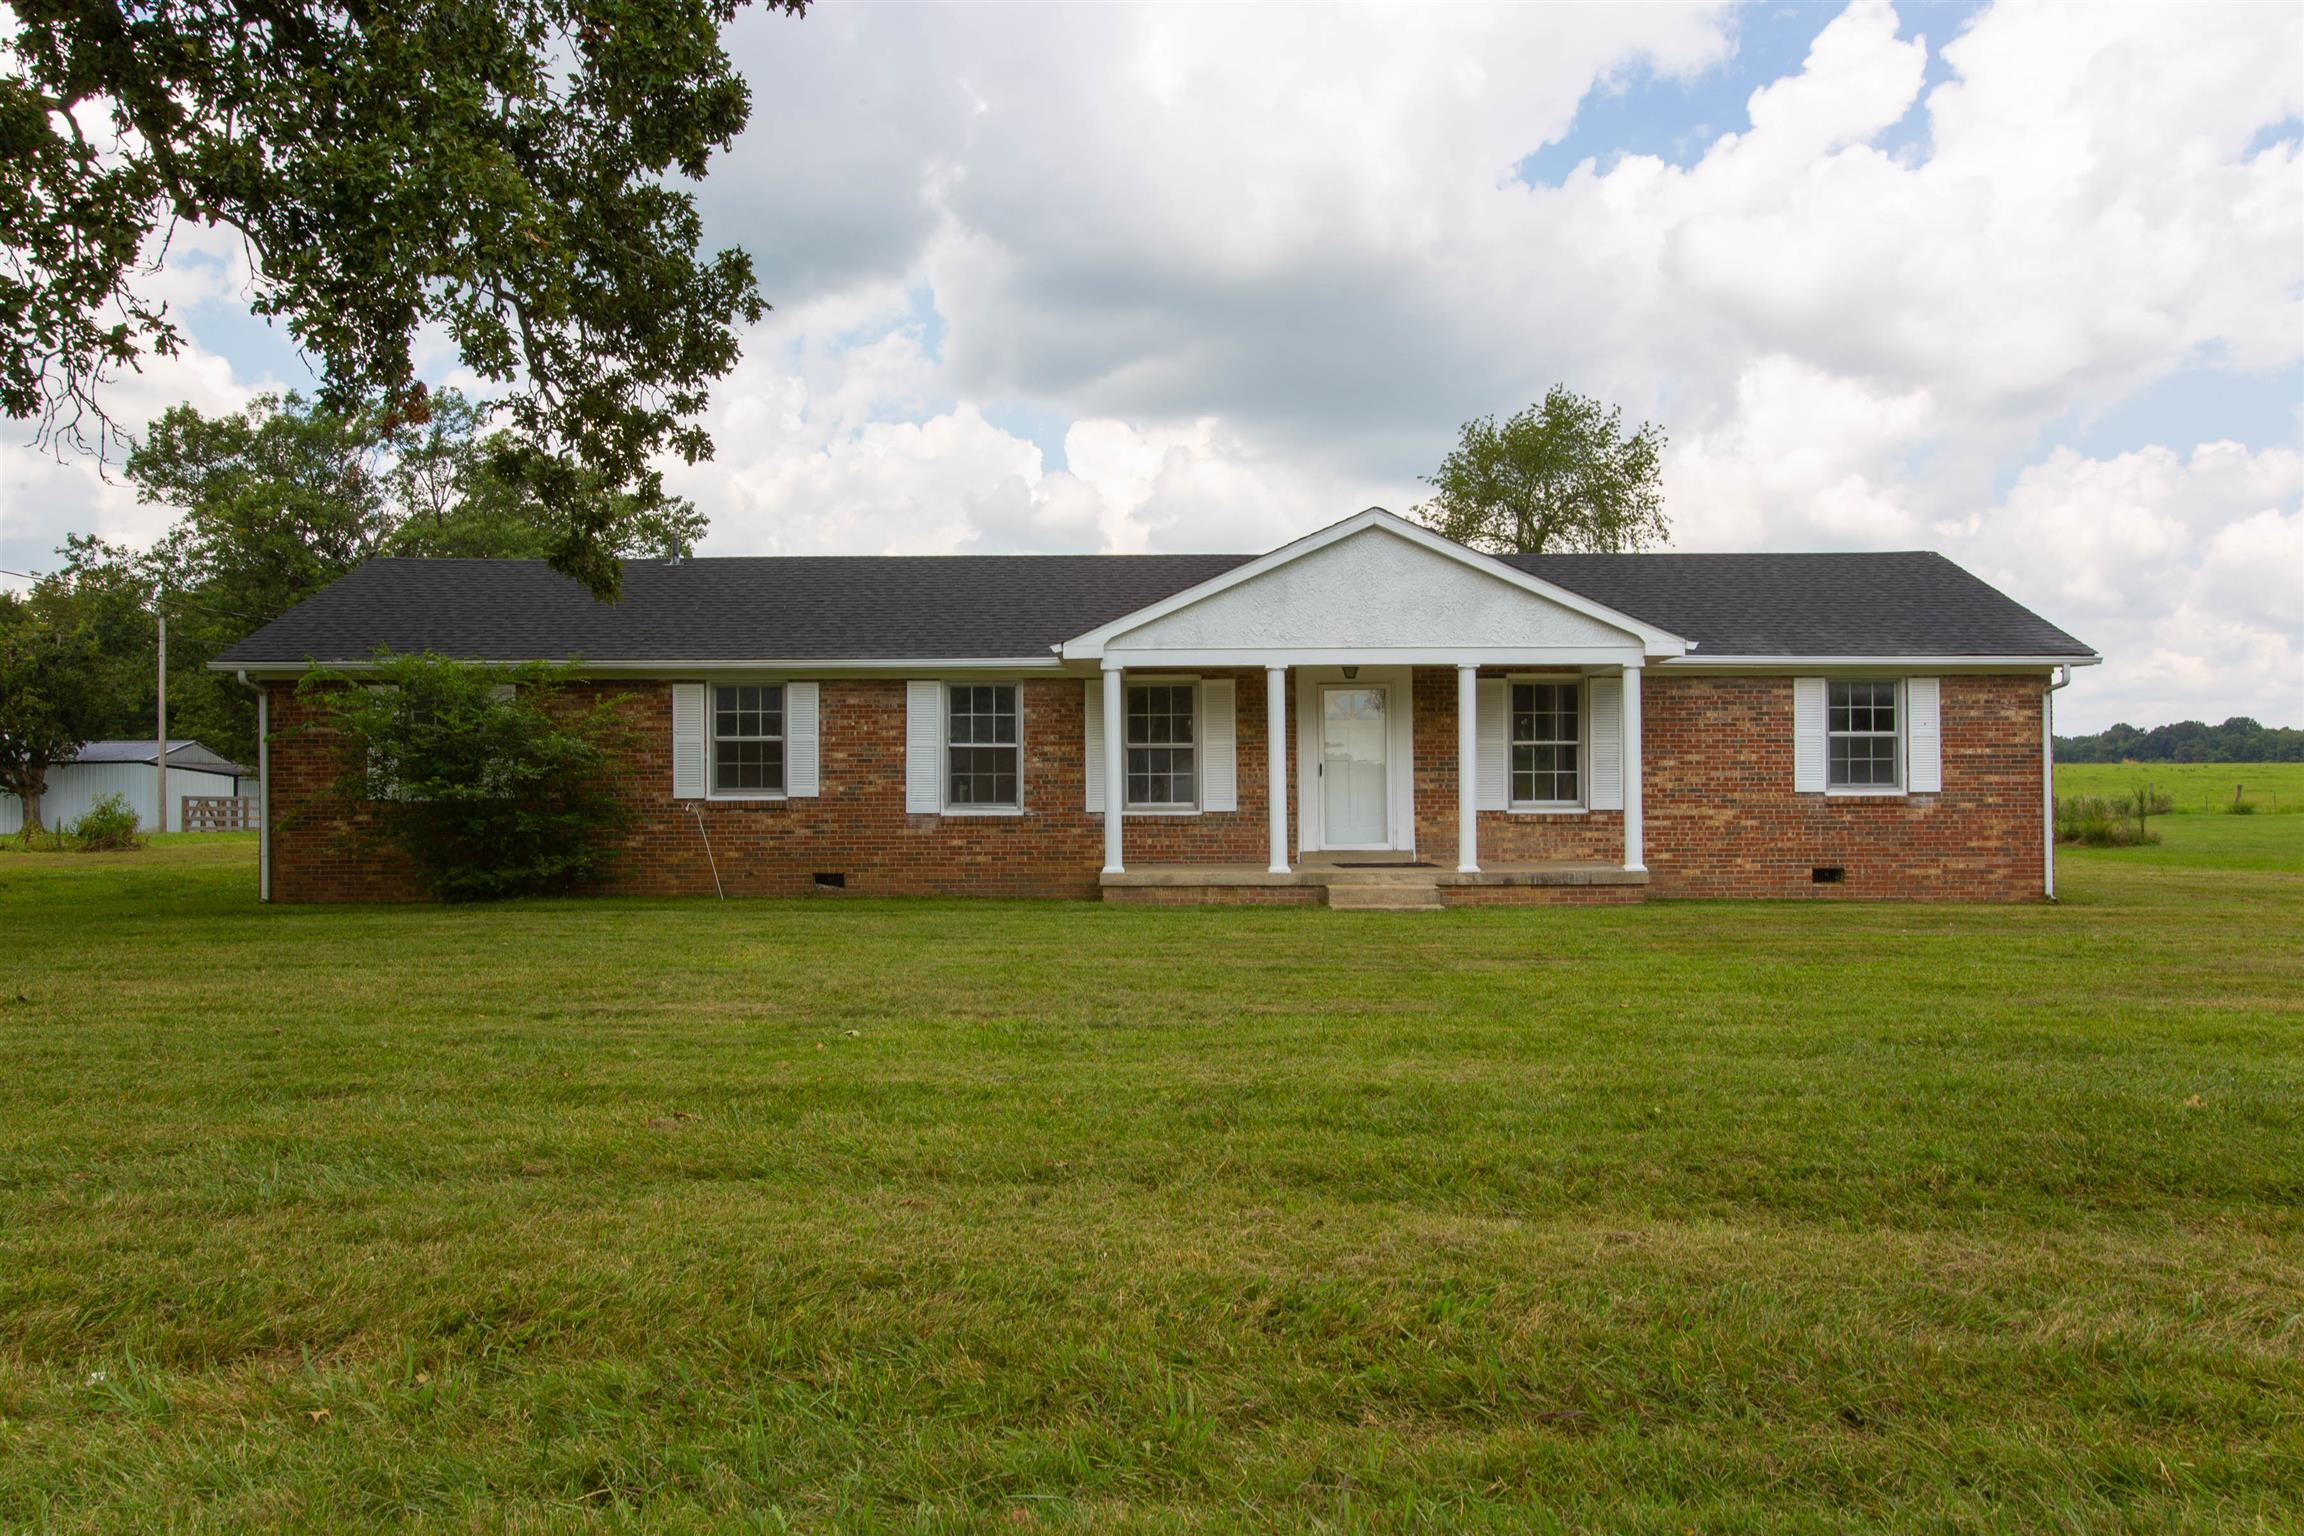 9170 Highway 49E, Orlinda, TN 37141 - Orlinda, TN real estate listing